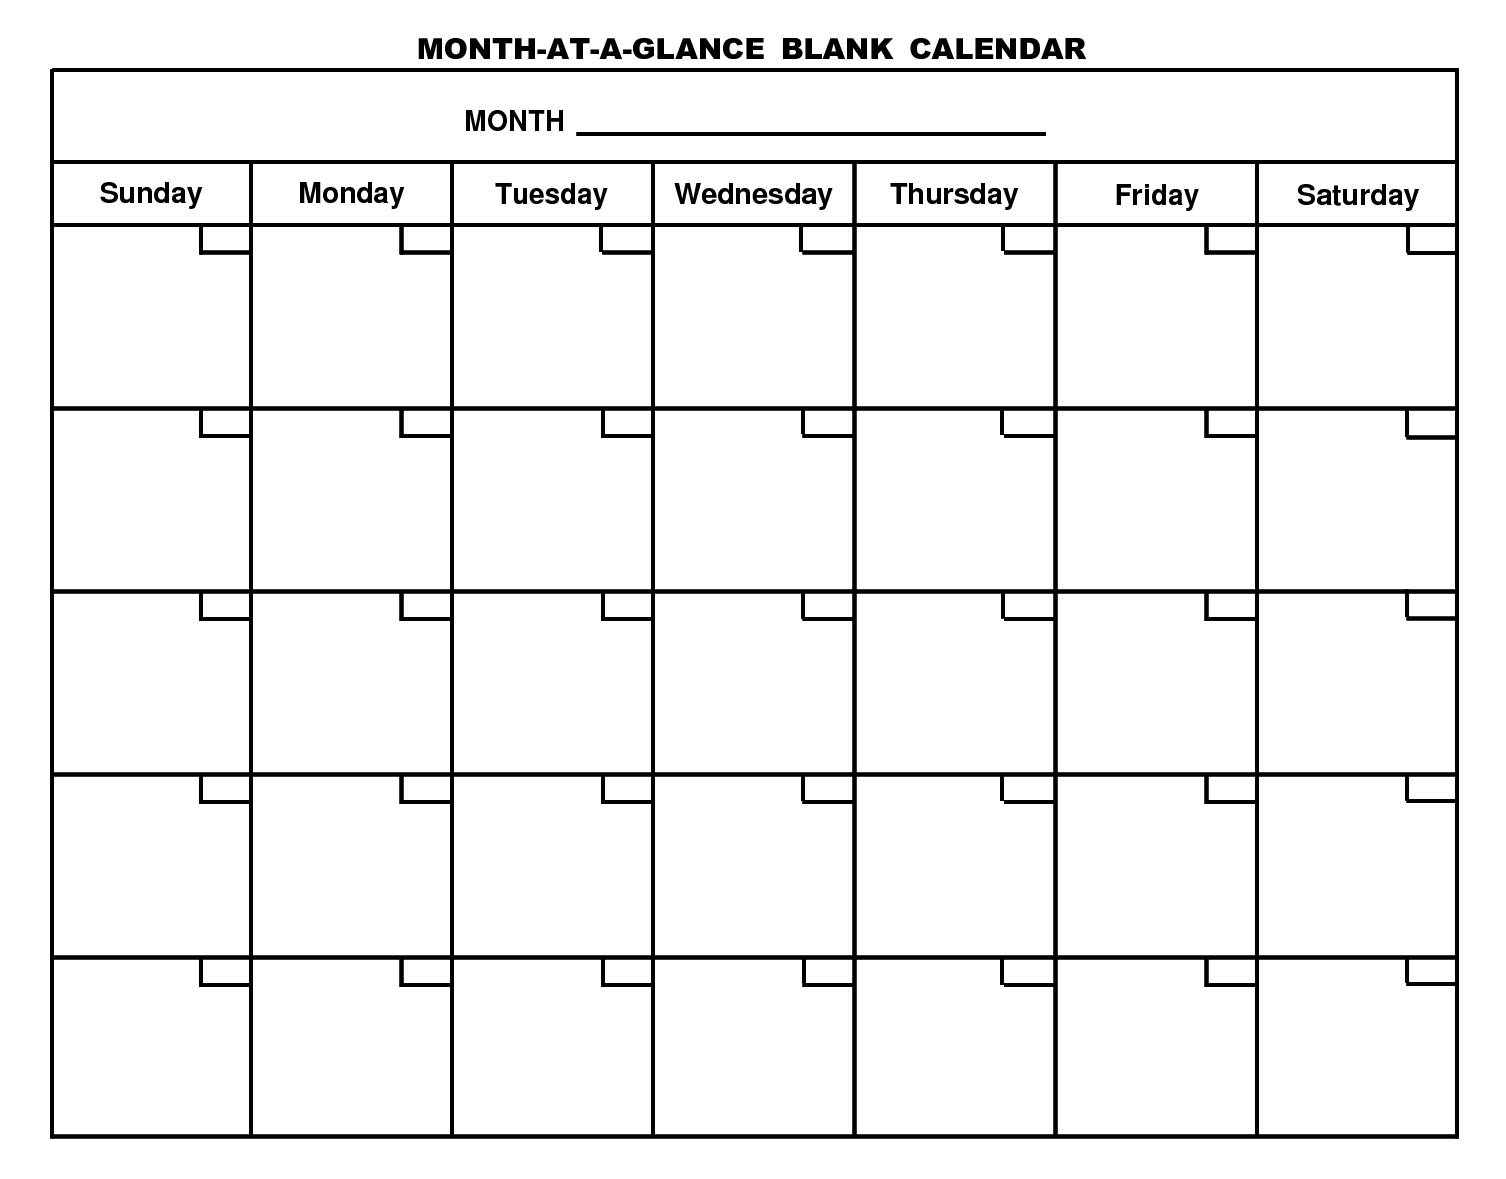 Catch Month At A Glance Blank Calendar Template